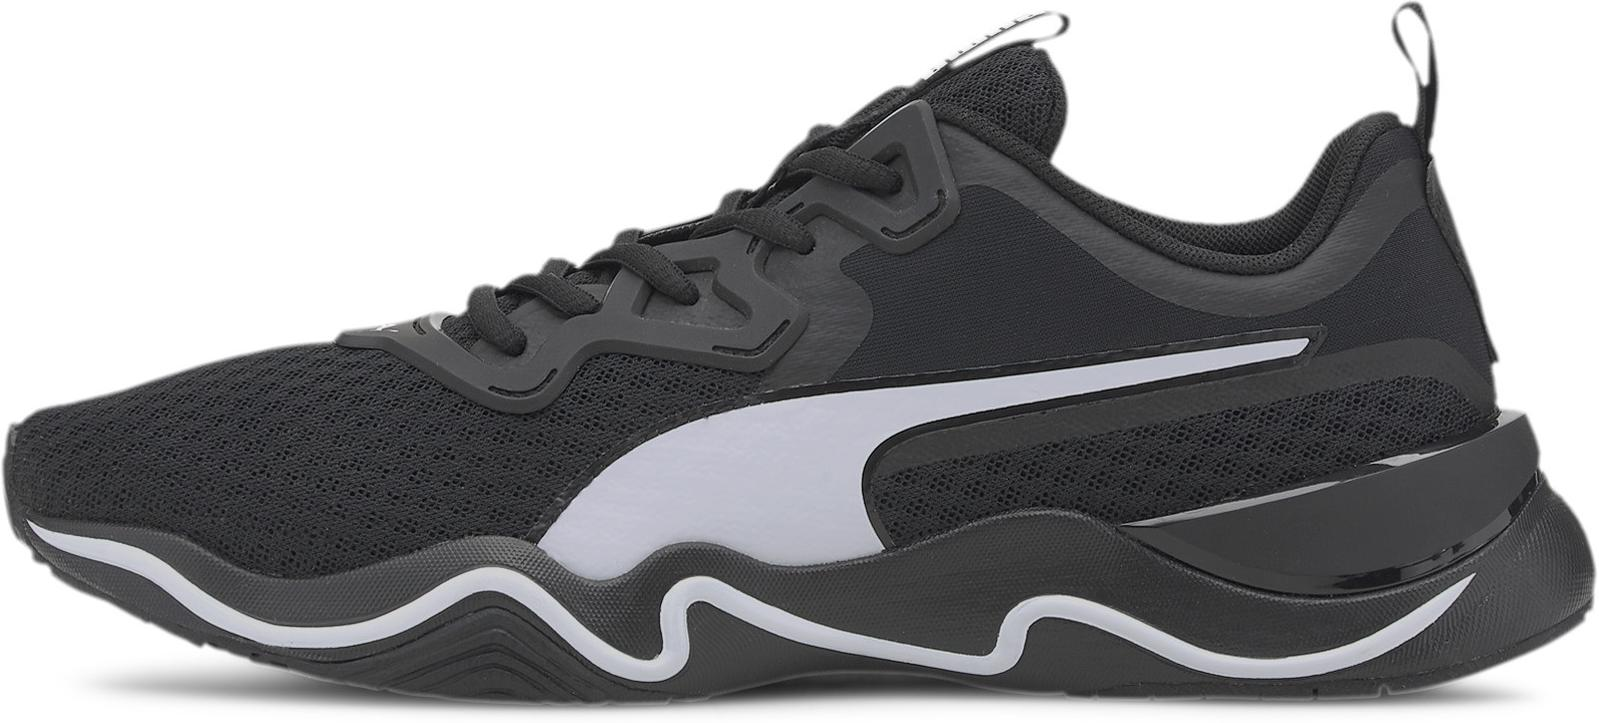 Zapatillas de fitness Puma Zone XT Men